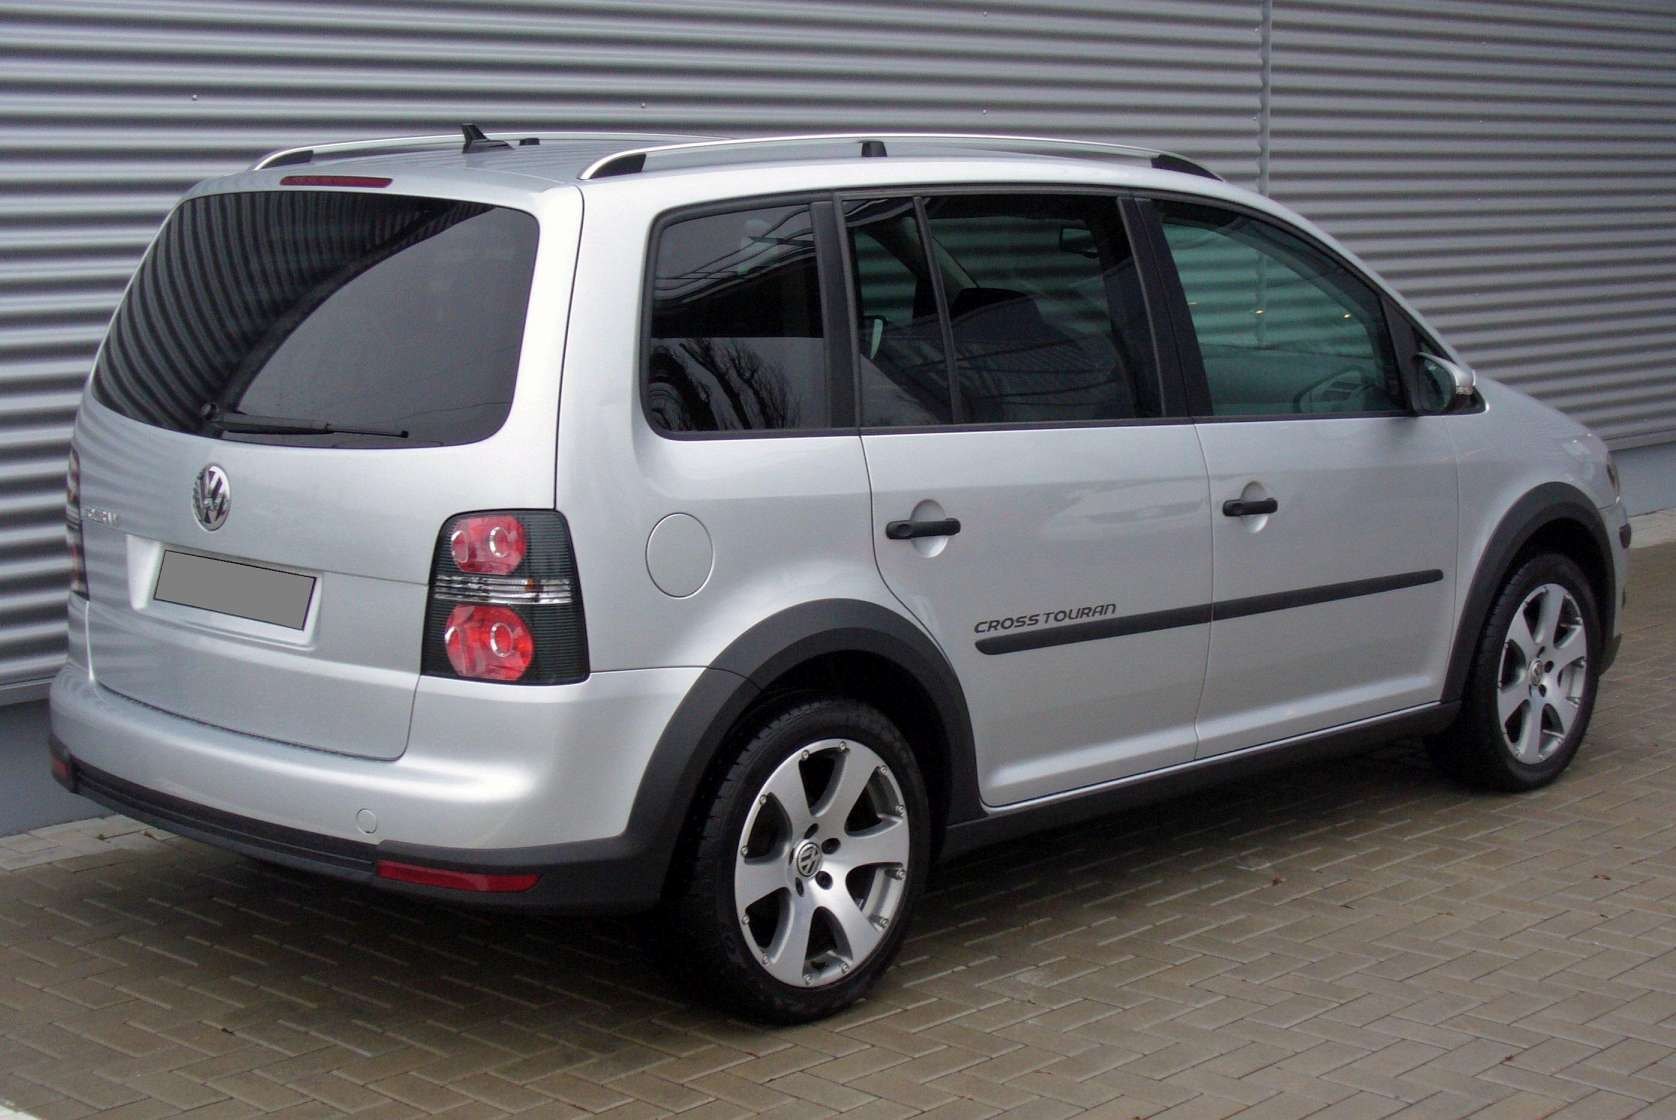 Volkswagen Cross Touran 1T 1.Four TSI 140HP AT